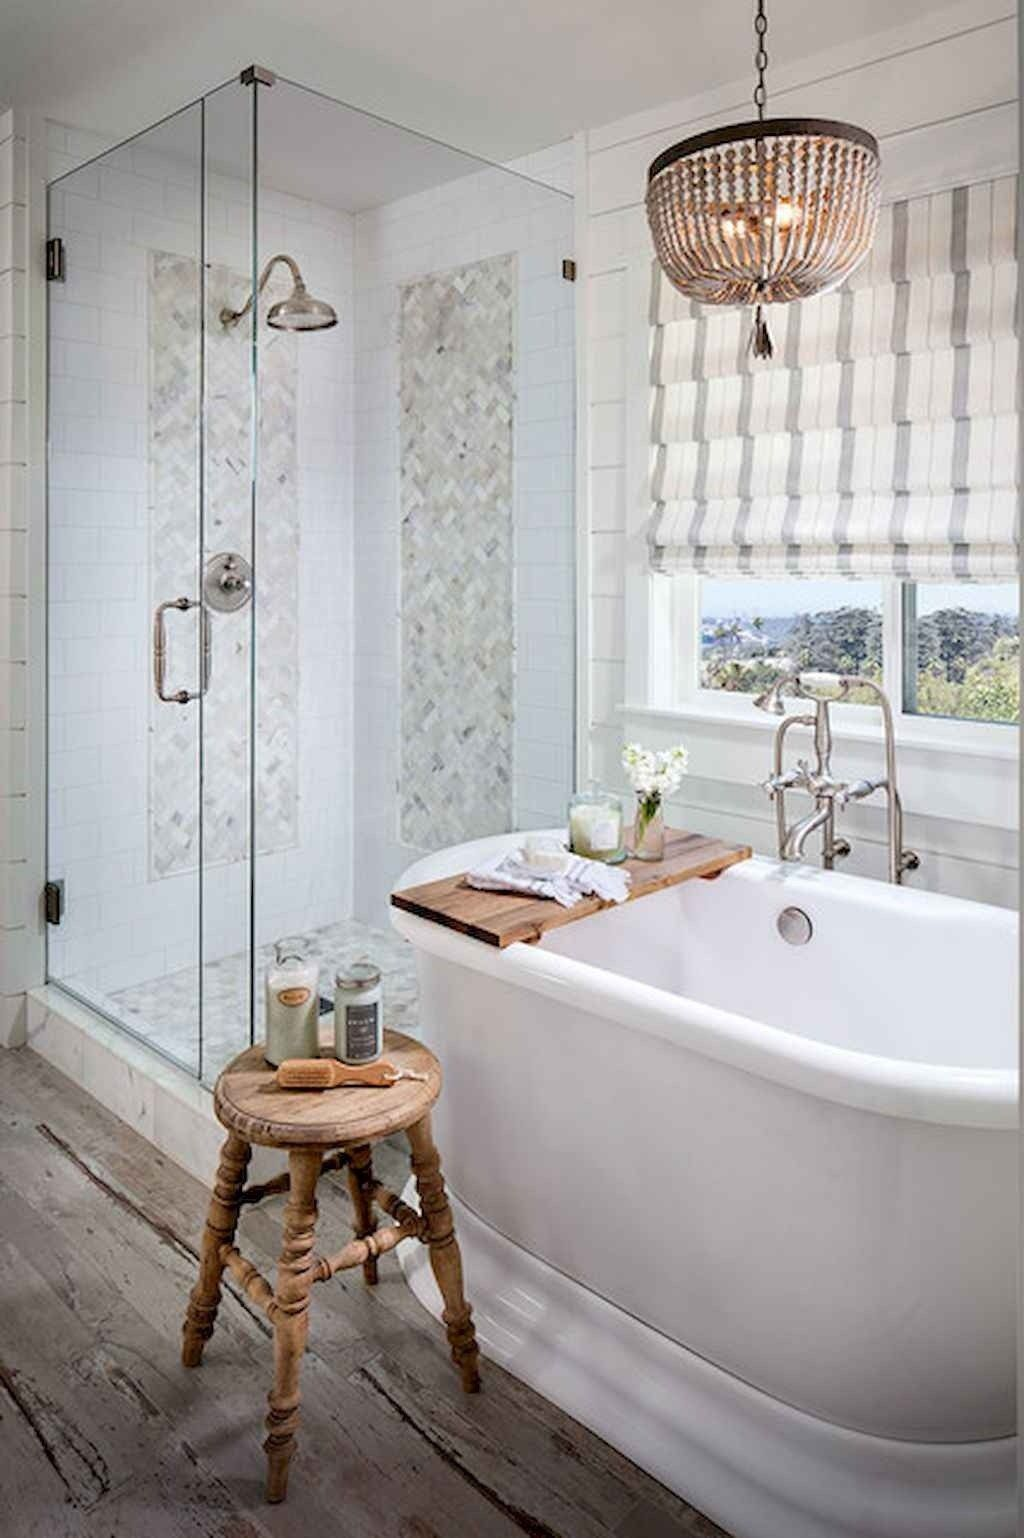 150 Amazing Small Farmhouse Bathroom Decor Ideas And ... on Amazing Small Bathrooms  id=32434